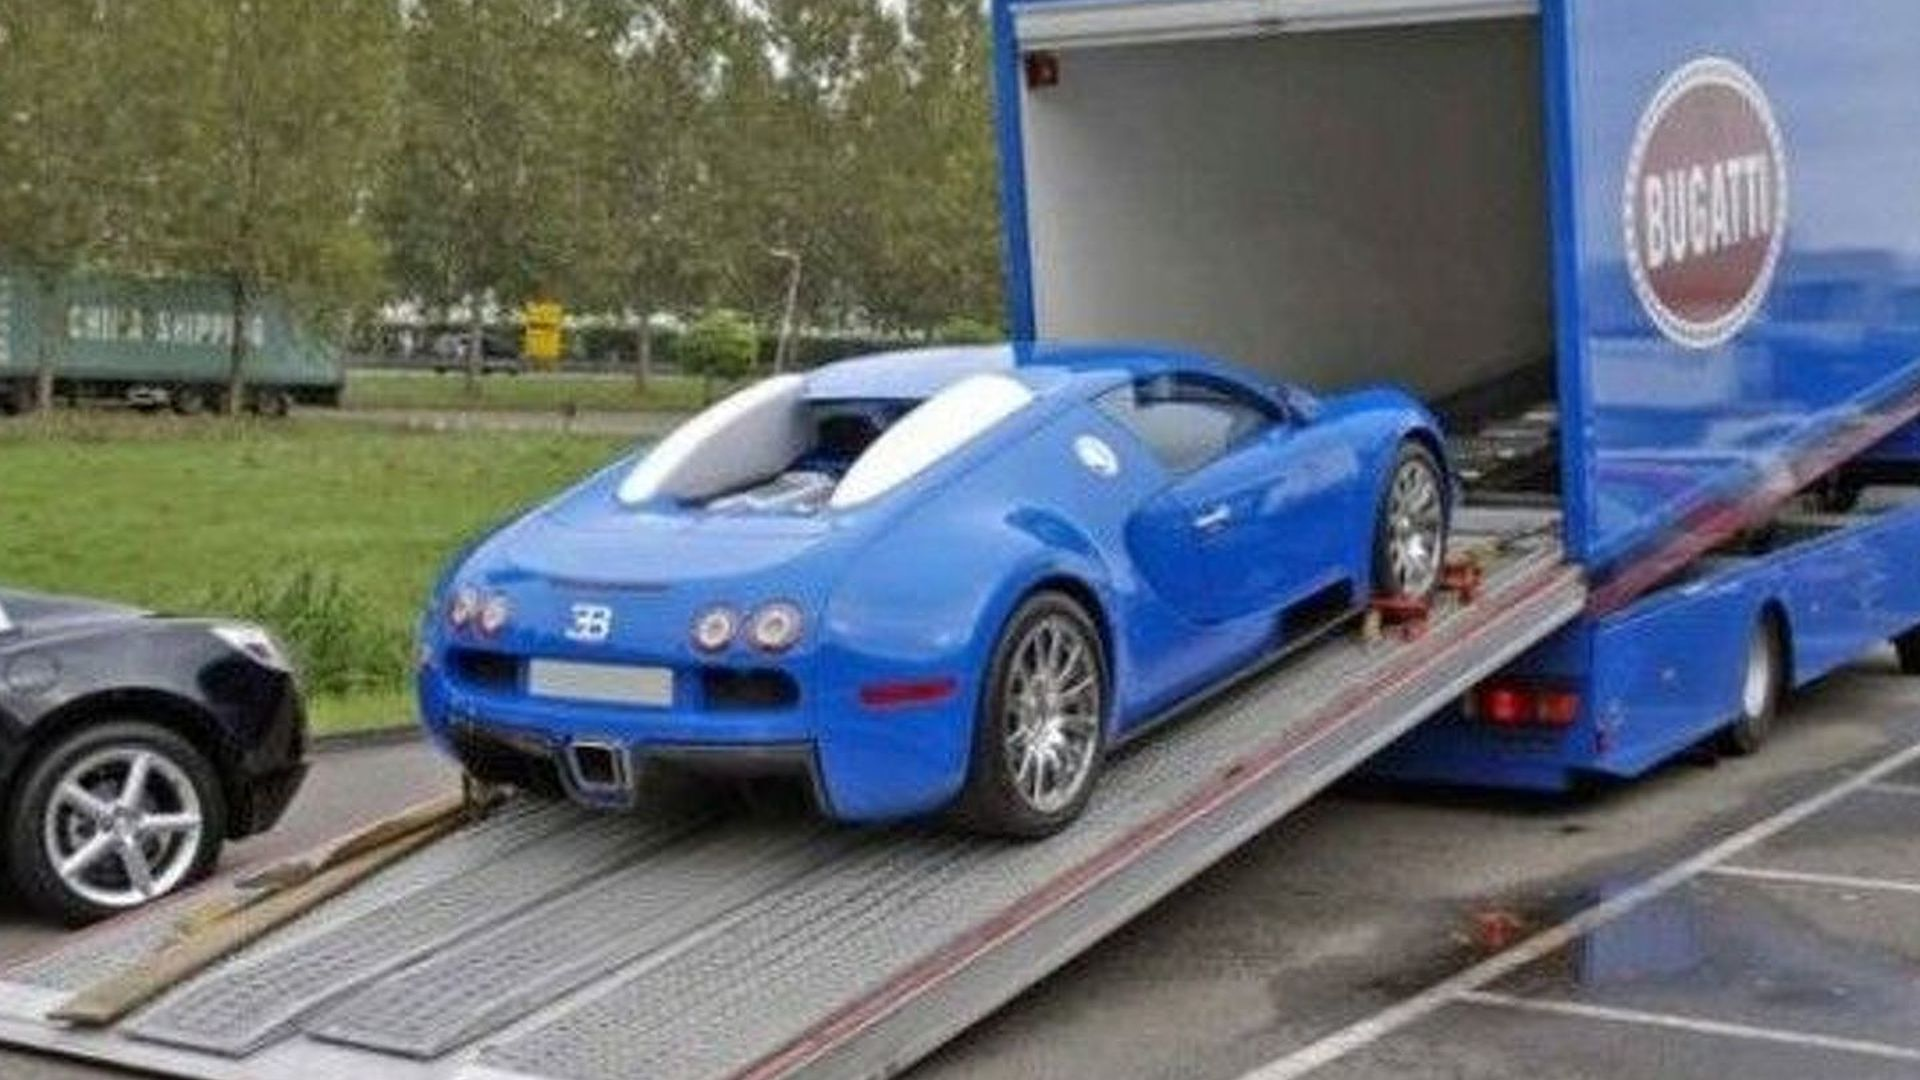 bugatti veyron for sale with matching transport truck. Black Bedroom Furniture Sets. Home Design Ideas